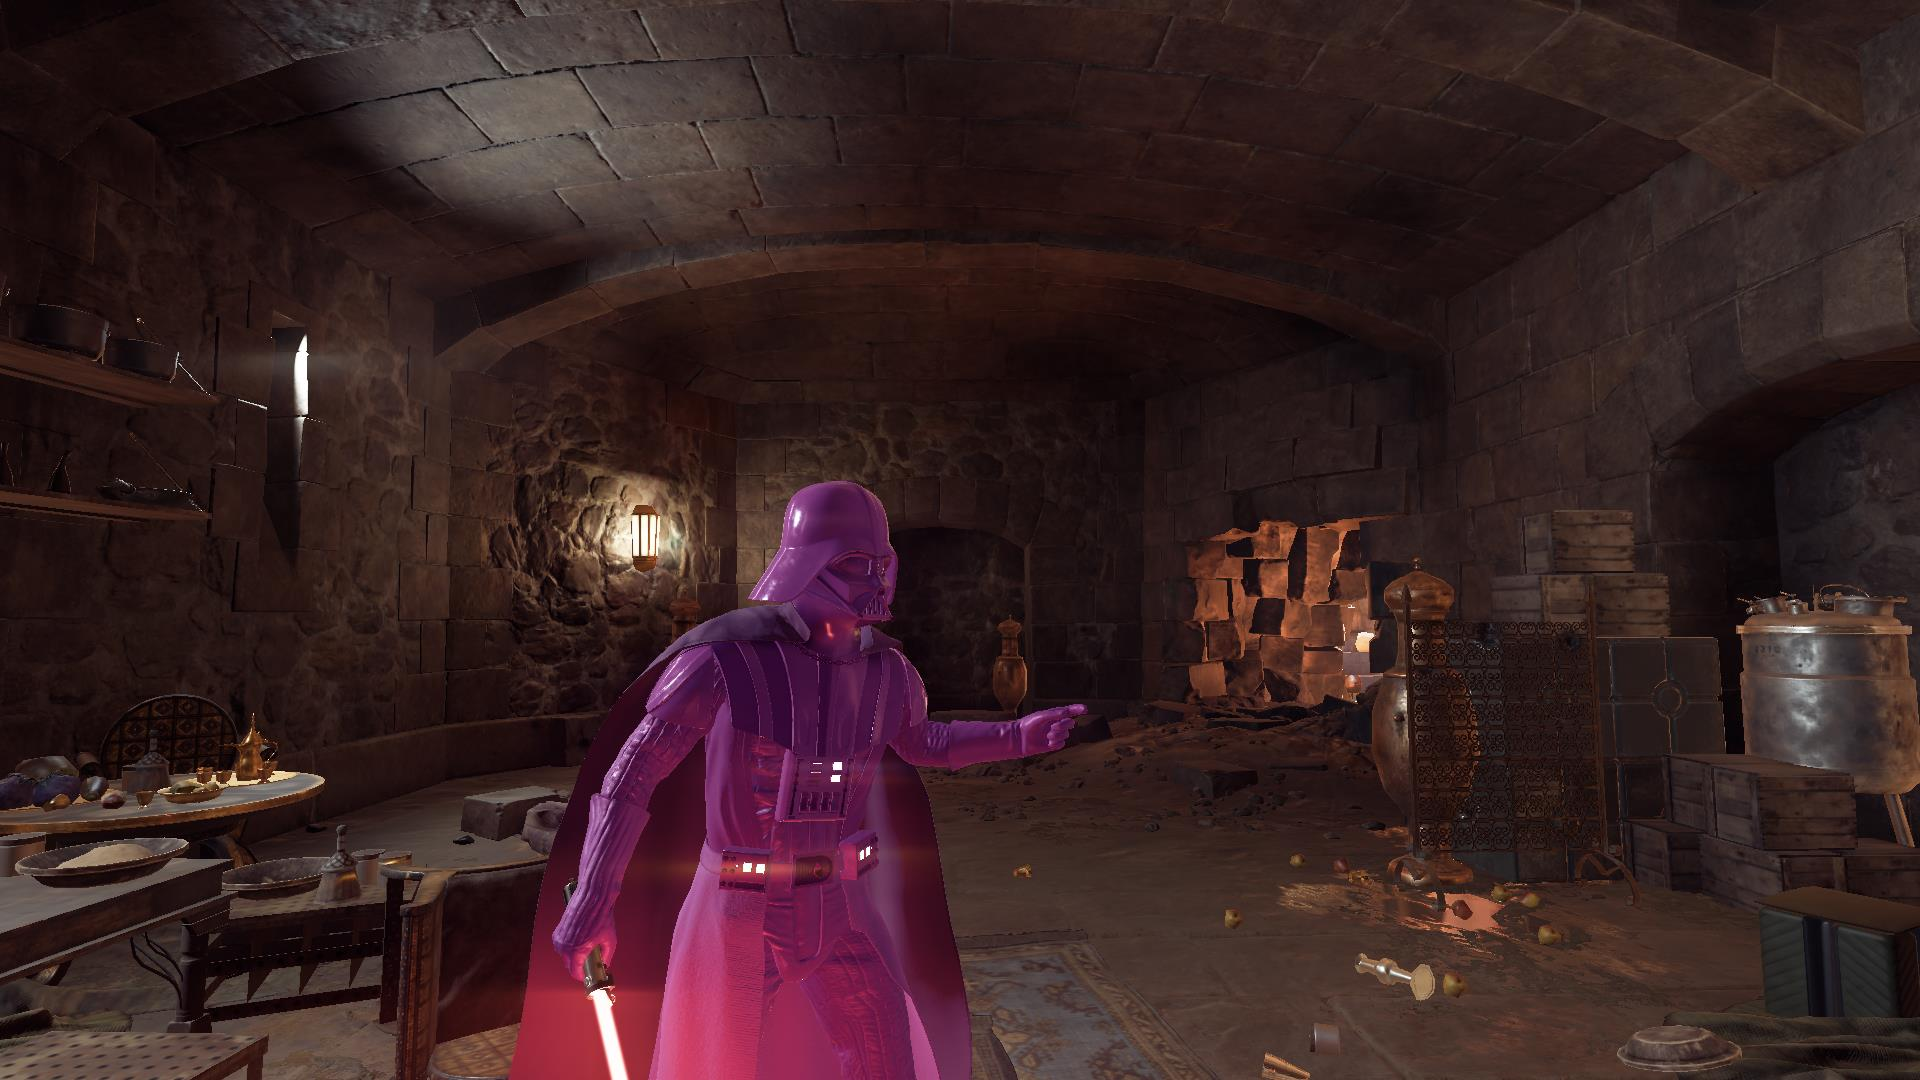 Star Wars Battlefront 2 Mods Let You Play As Pink Darth Vader Matt The Radar Technician From That Snl Skit Vg247